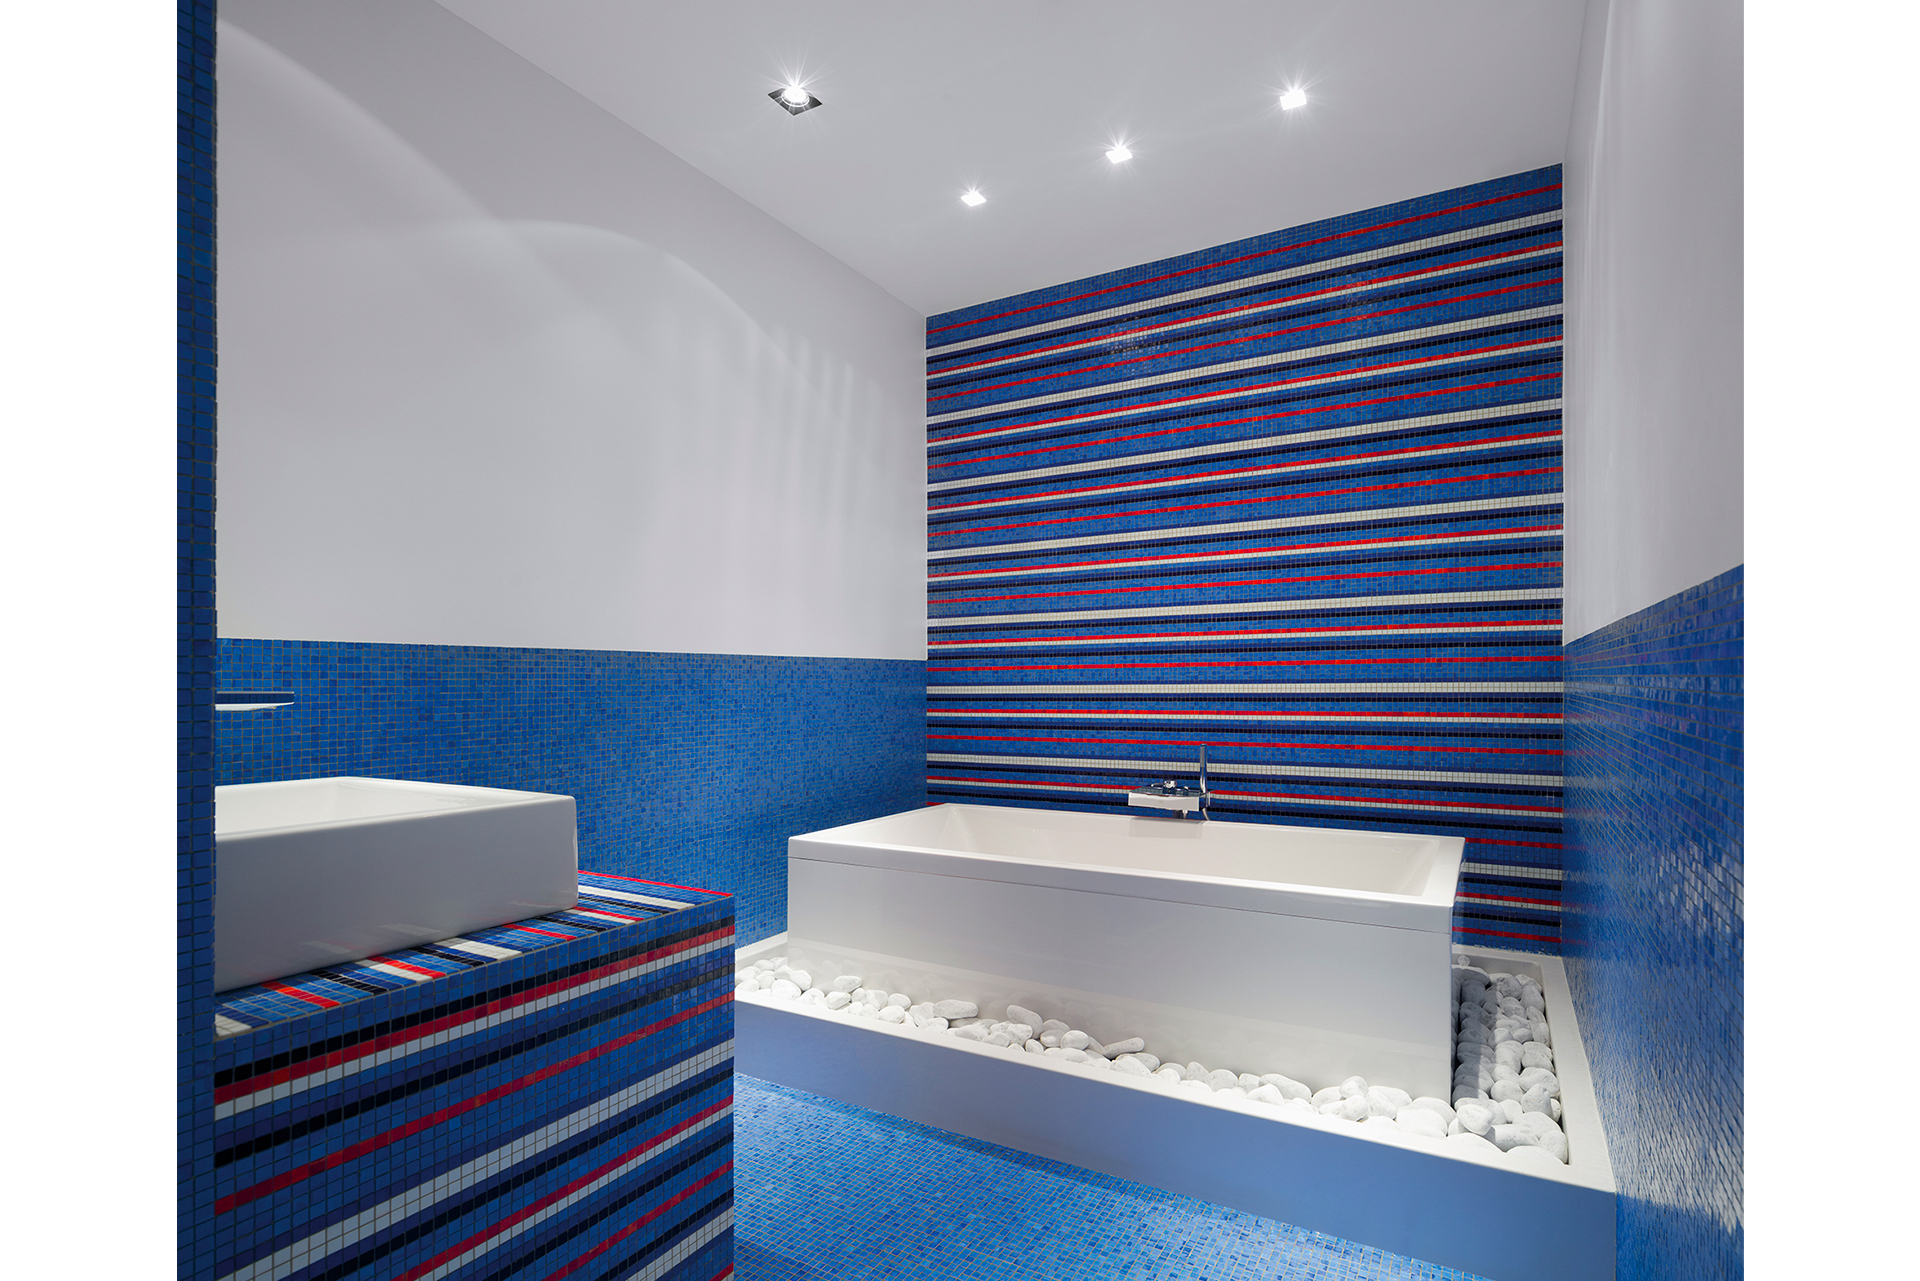 Blue mosiac covers the walls surounding a designer bathtub with natural stone overflow